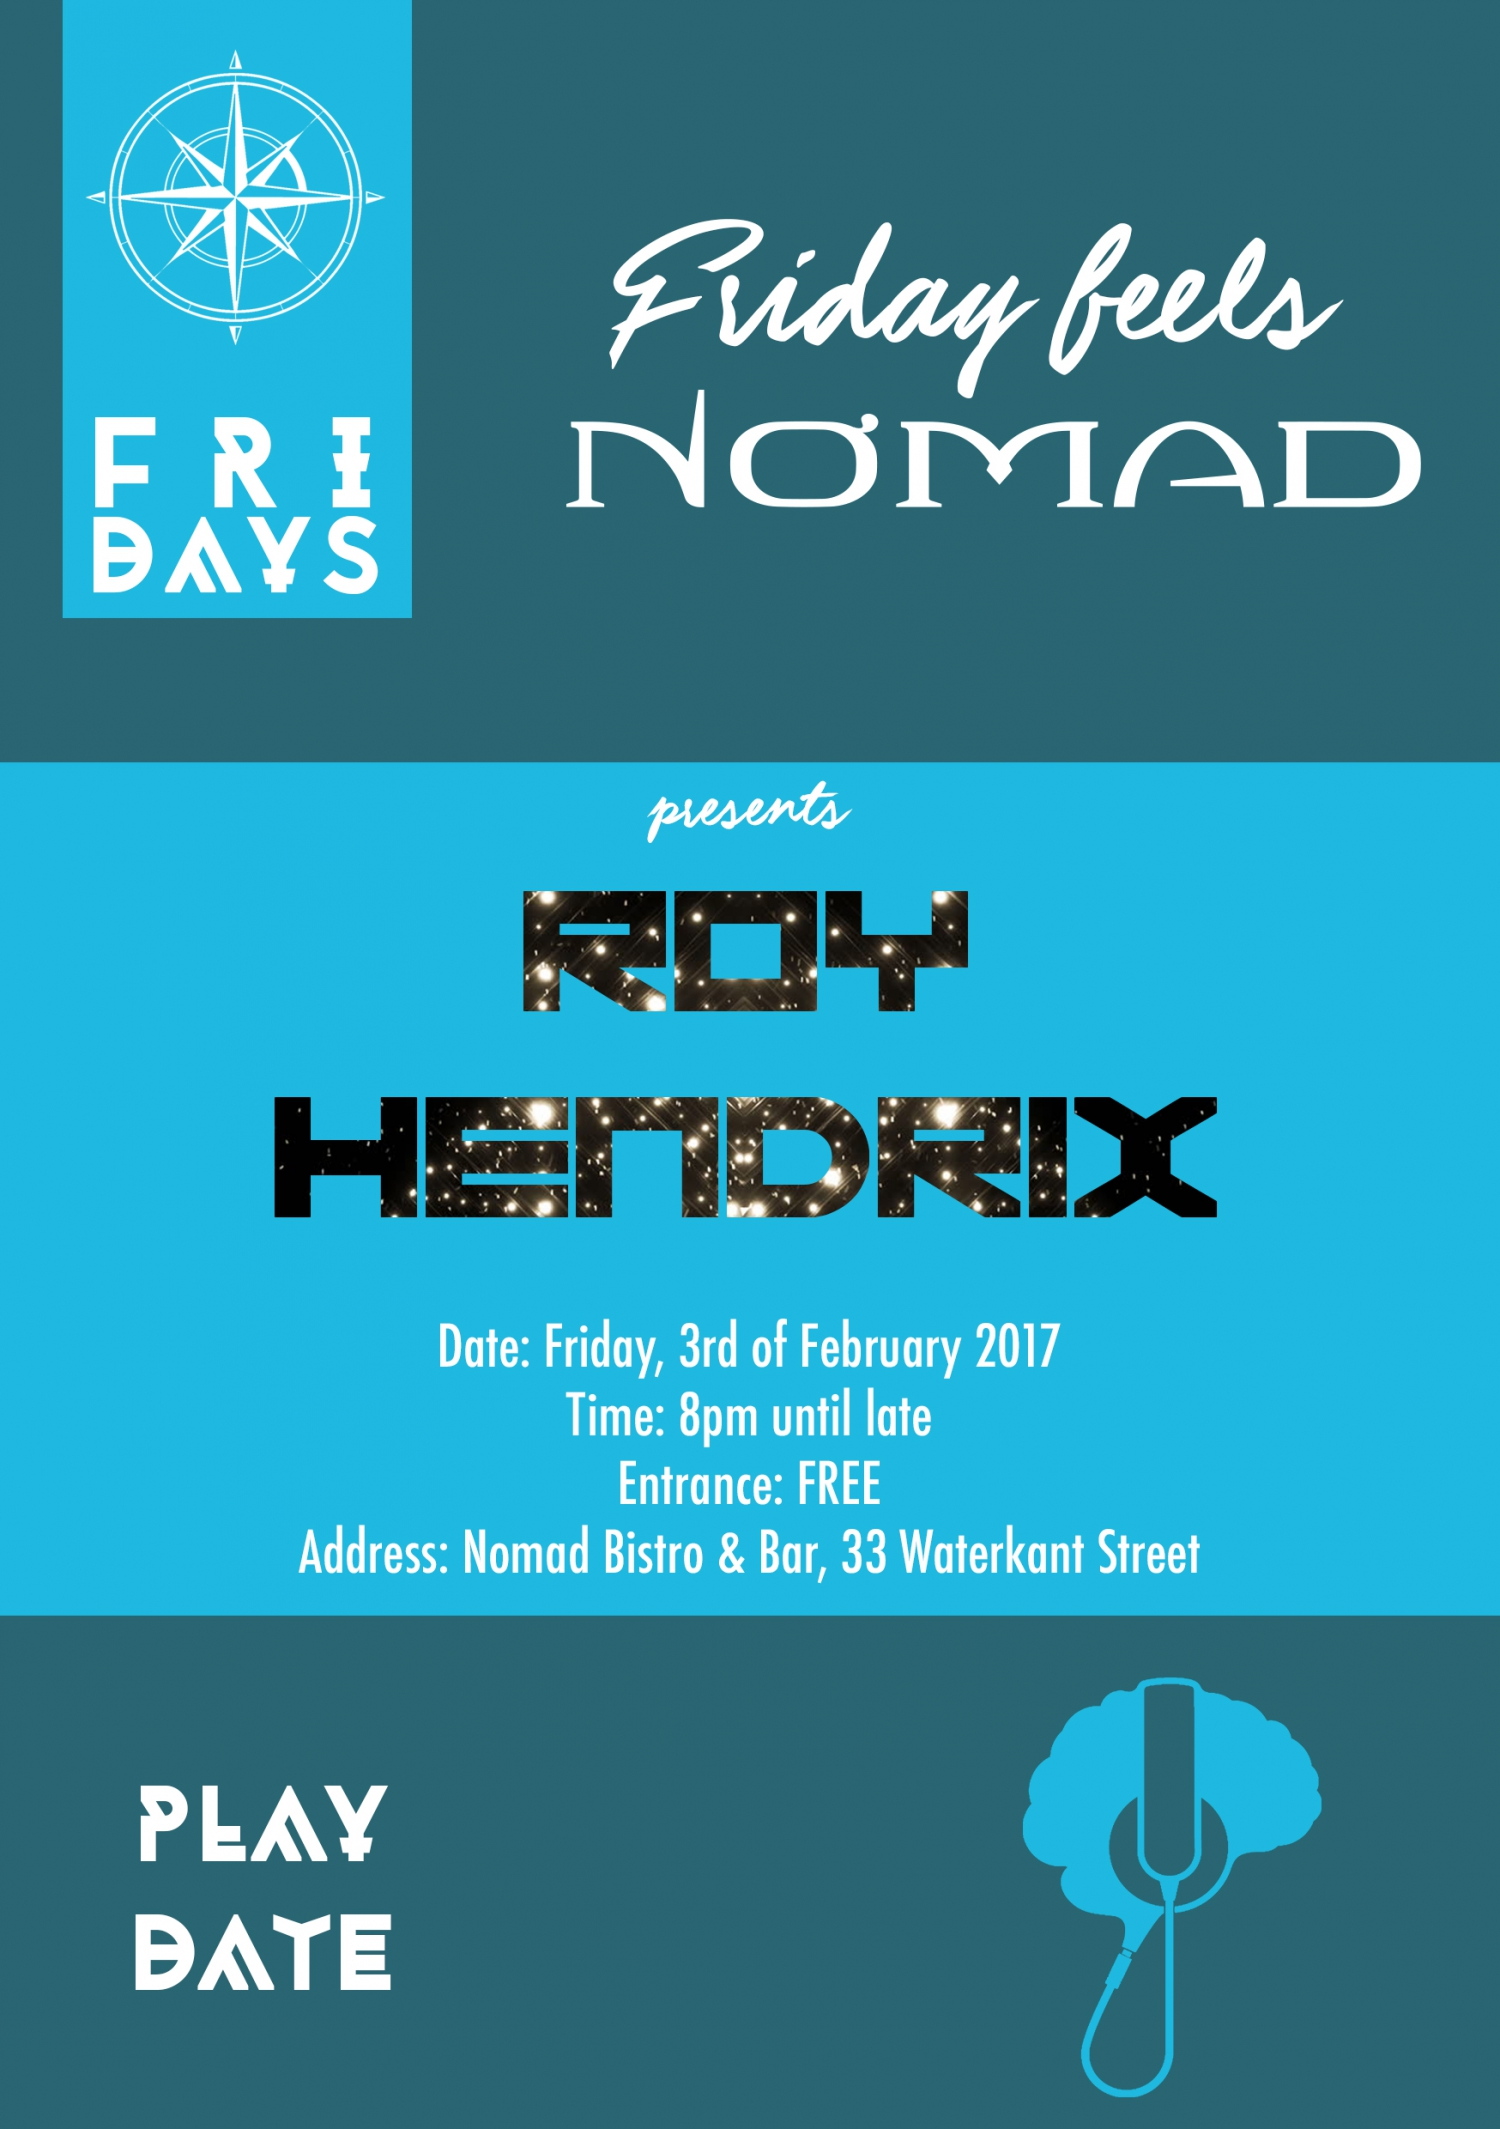 Nomad Bistro & Bar launches its 'Friday Feels' event